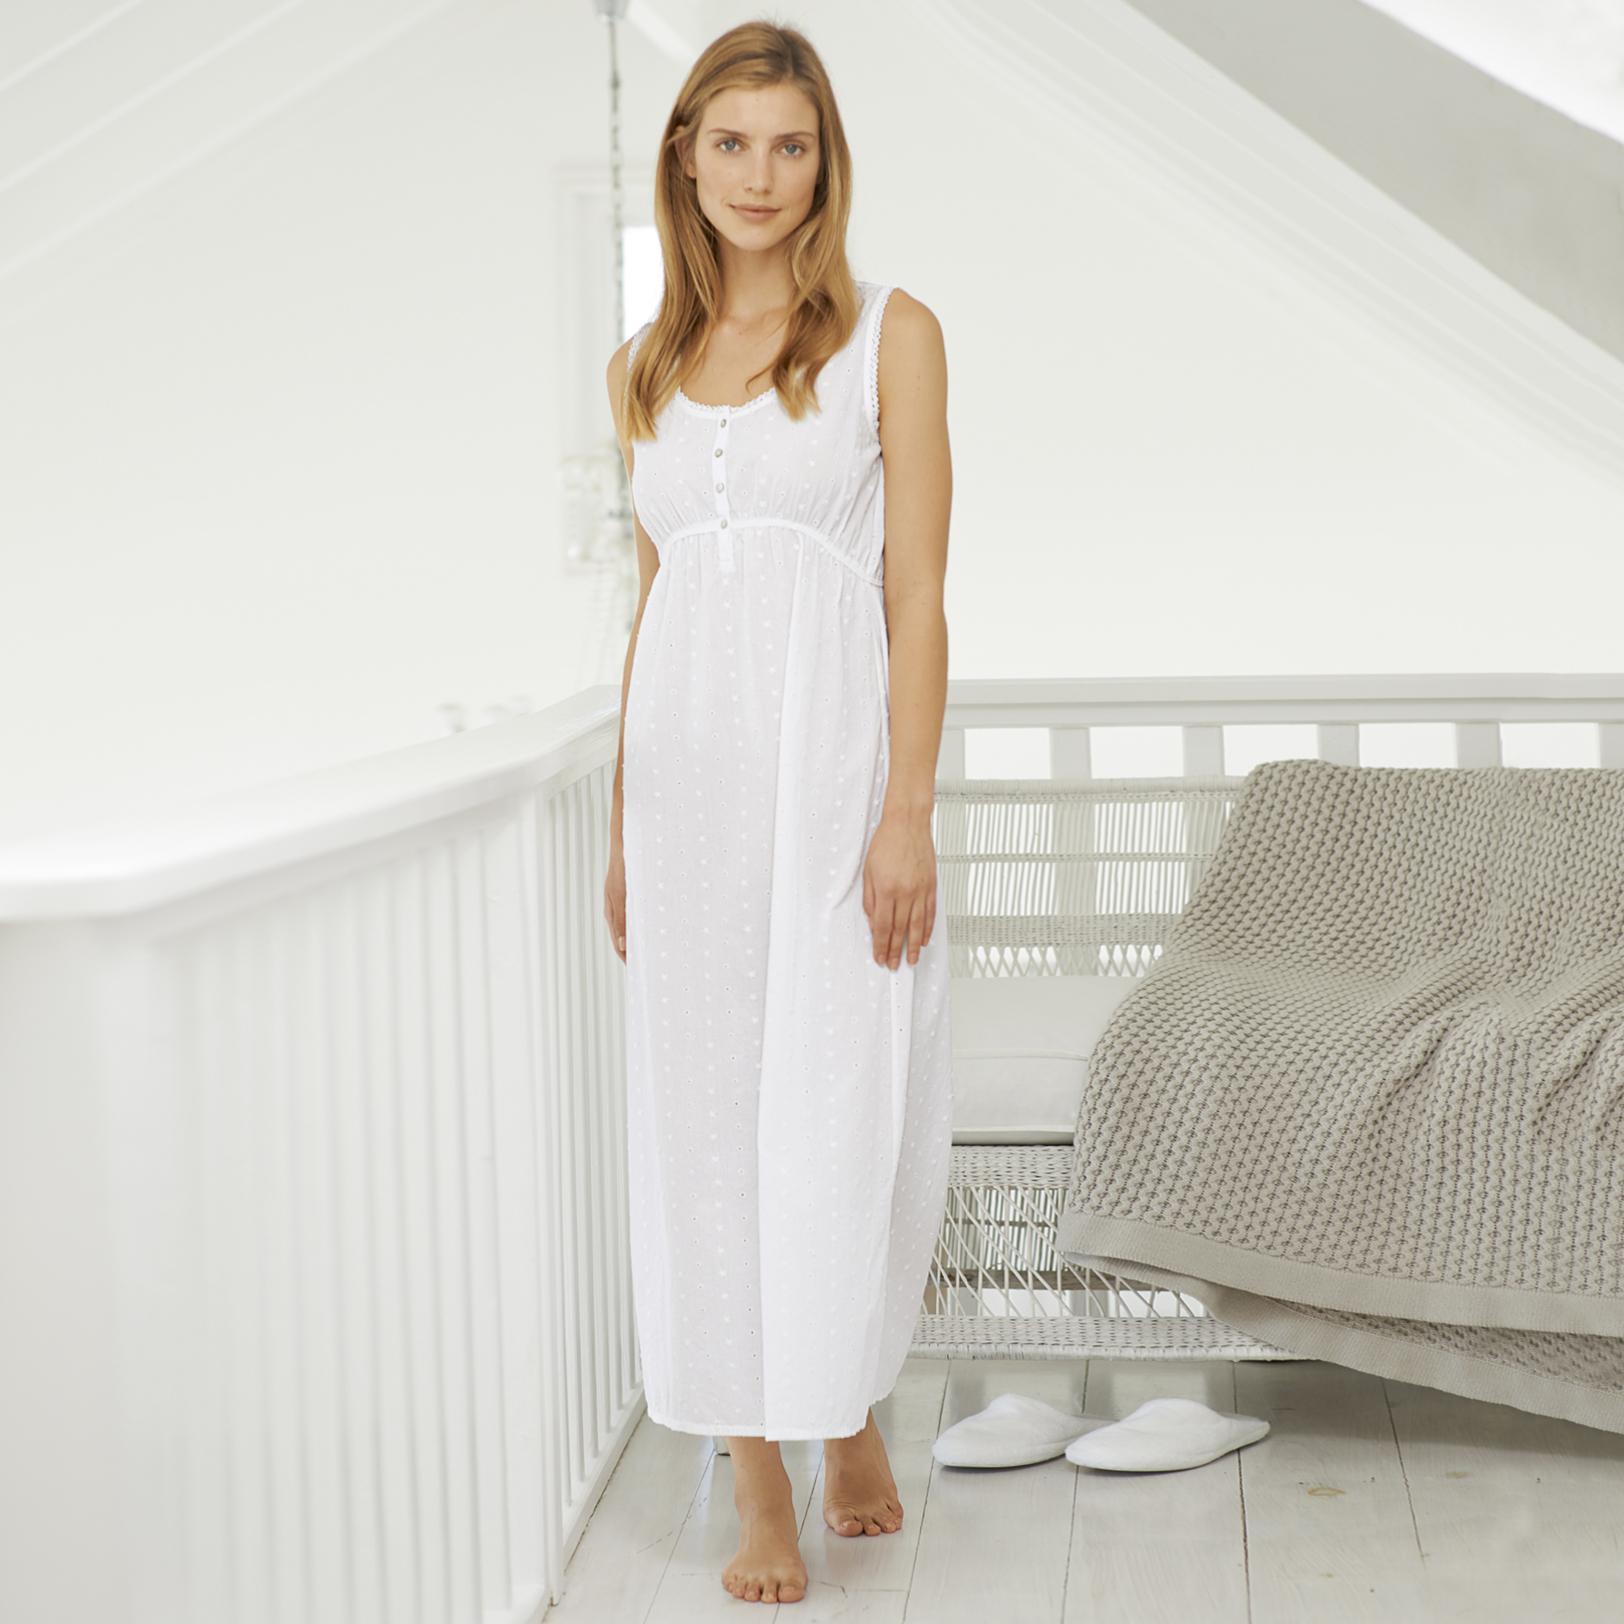 Lyst - The white company Lace Trim Dobby Long Night Gown in White